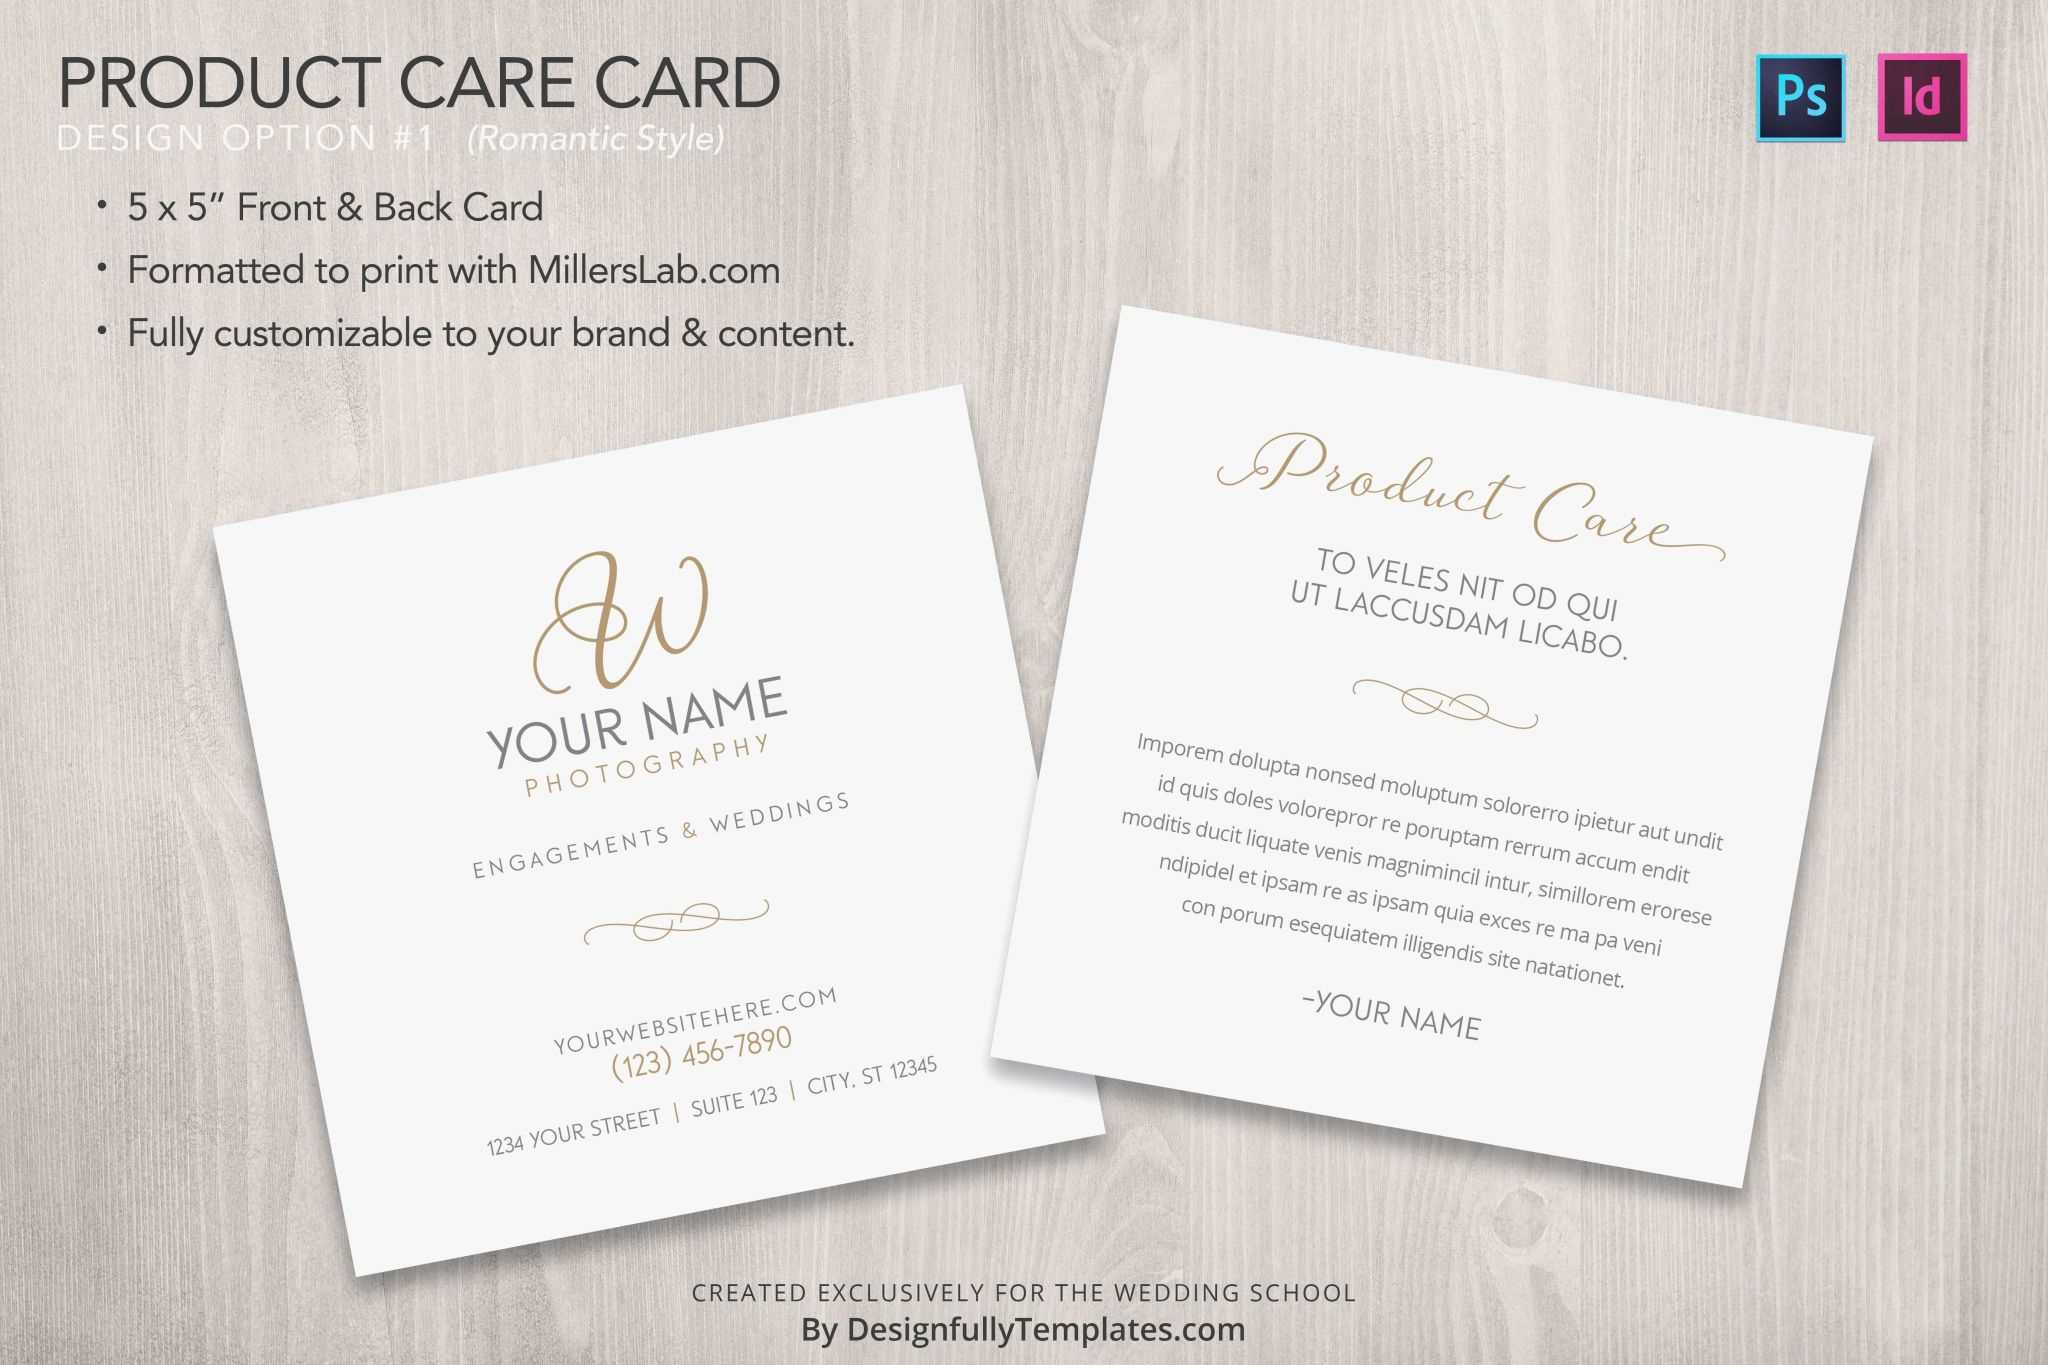 Free Place Card Templates 6 Per Page - Atlantaauctionco Regarding Place Card Template Free 6 Per Page